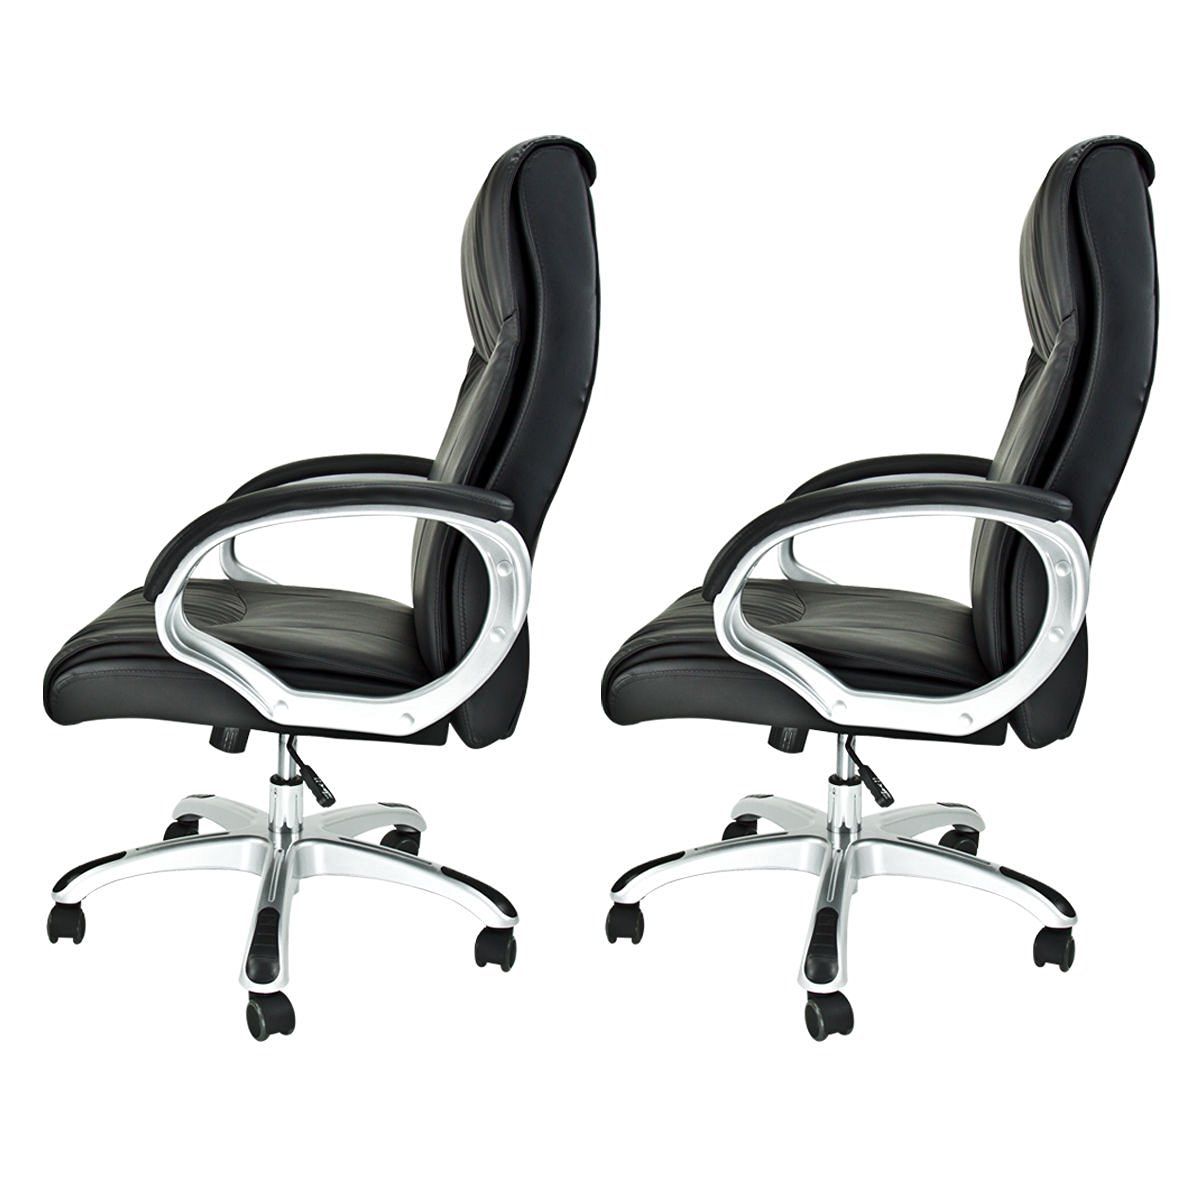 Perchoice 2 X Office Chairs Draft High Back Executive Pu Leather Ergonomic Computer Desk